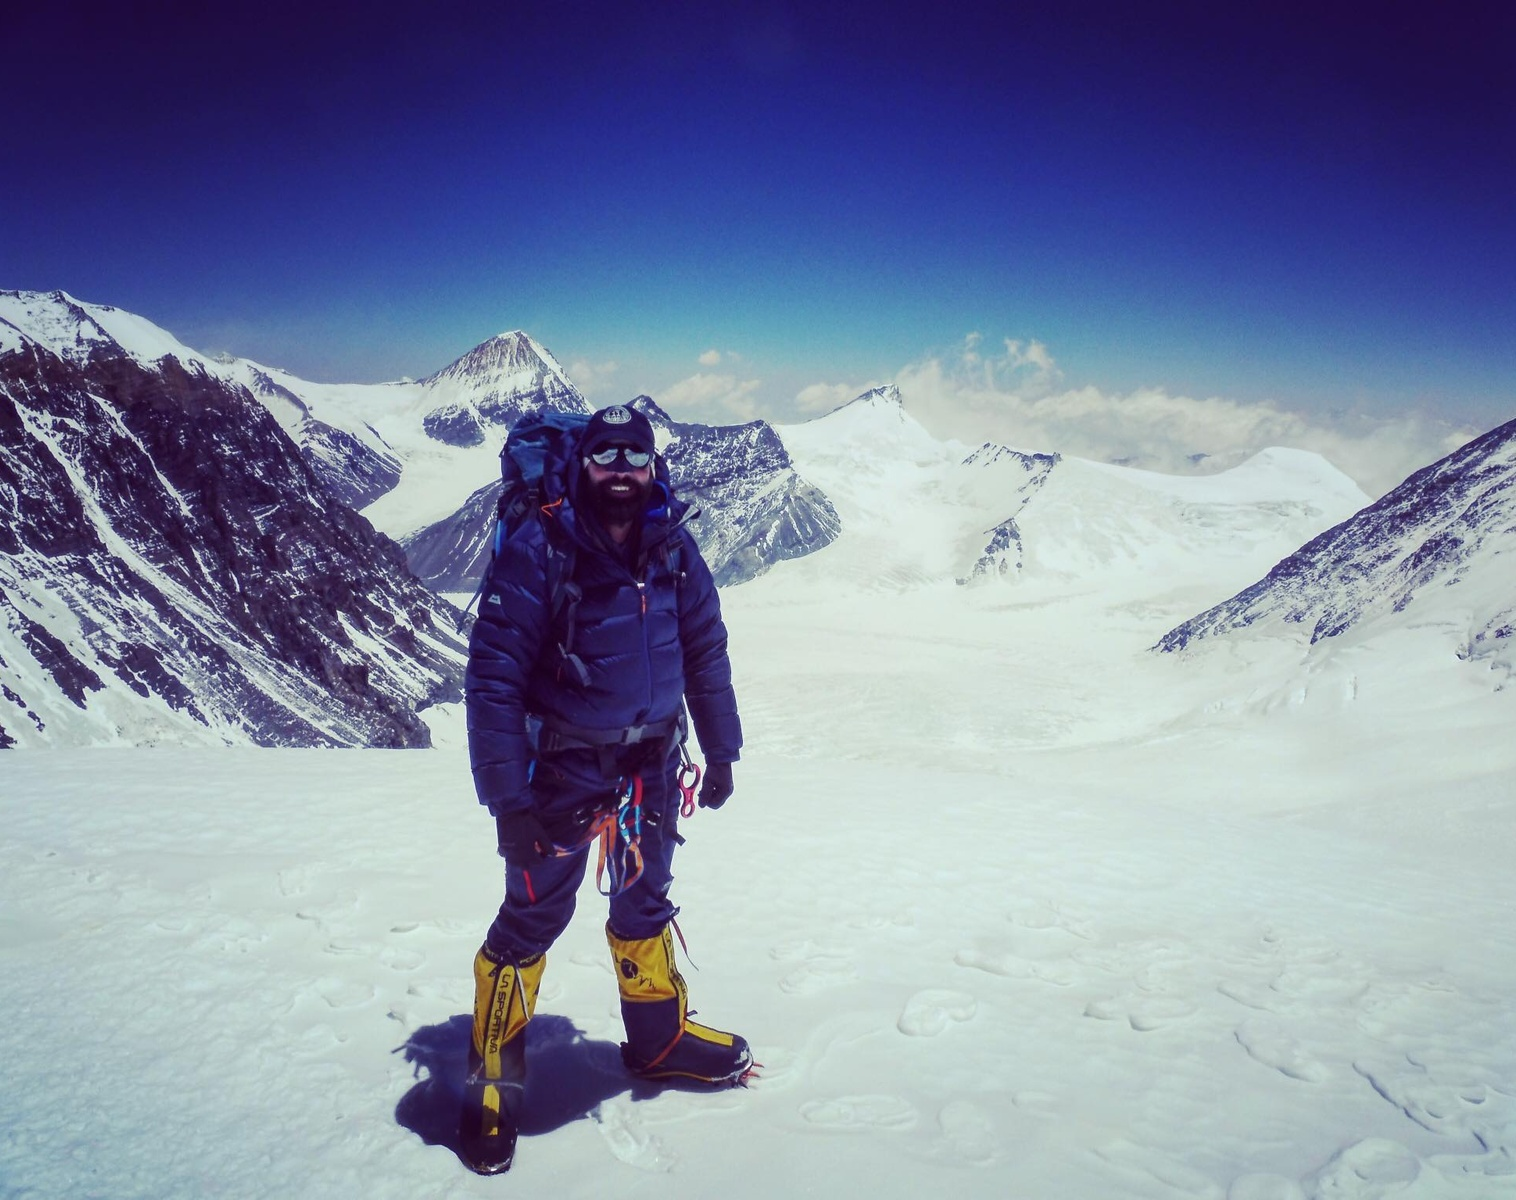 Jamie Ironmonger | Mind Everest Expedition | Thuraya X5 Touch